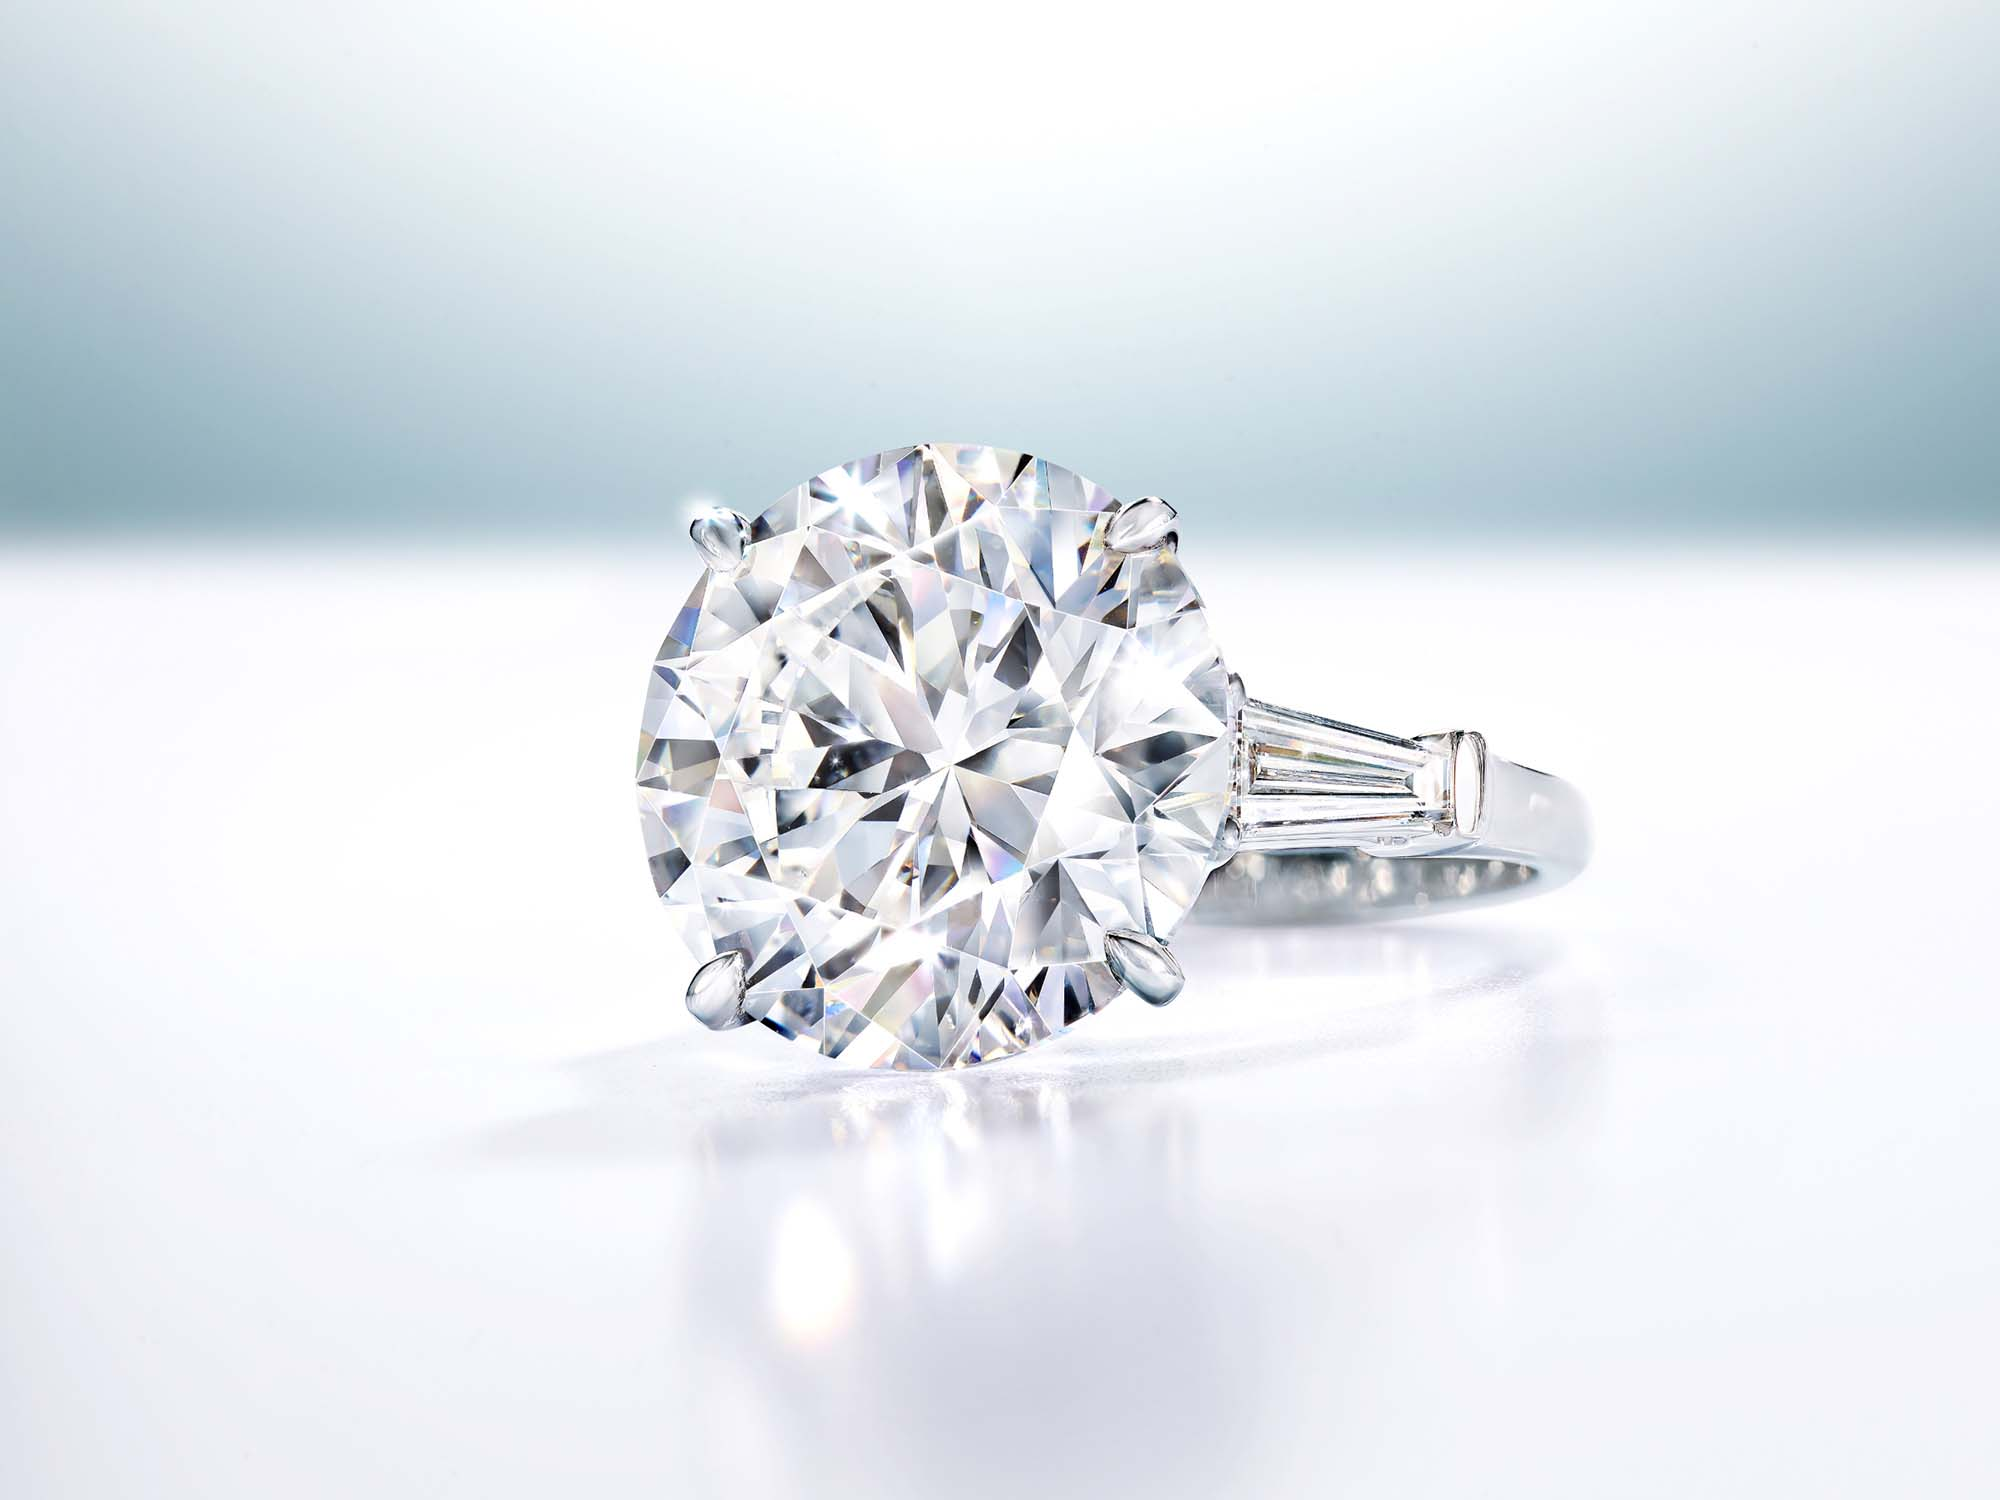 Promise Round Diamond Engagement Ring with baguette side stones from the Graff Bridal collection